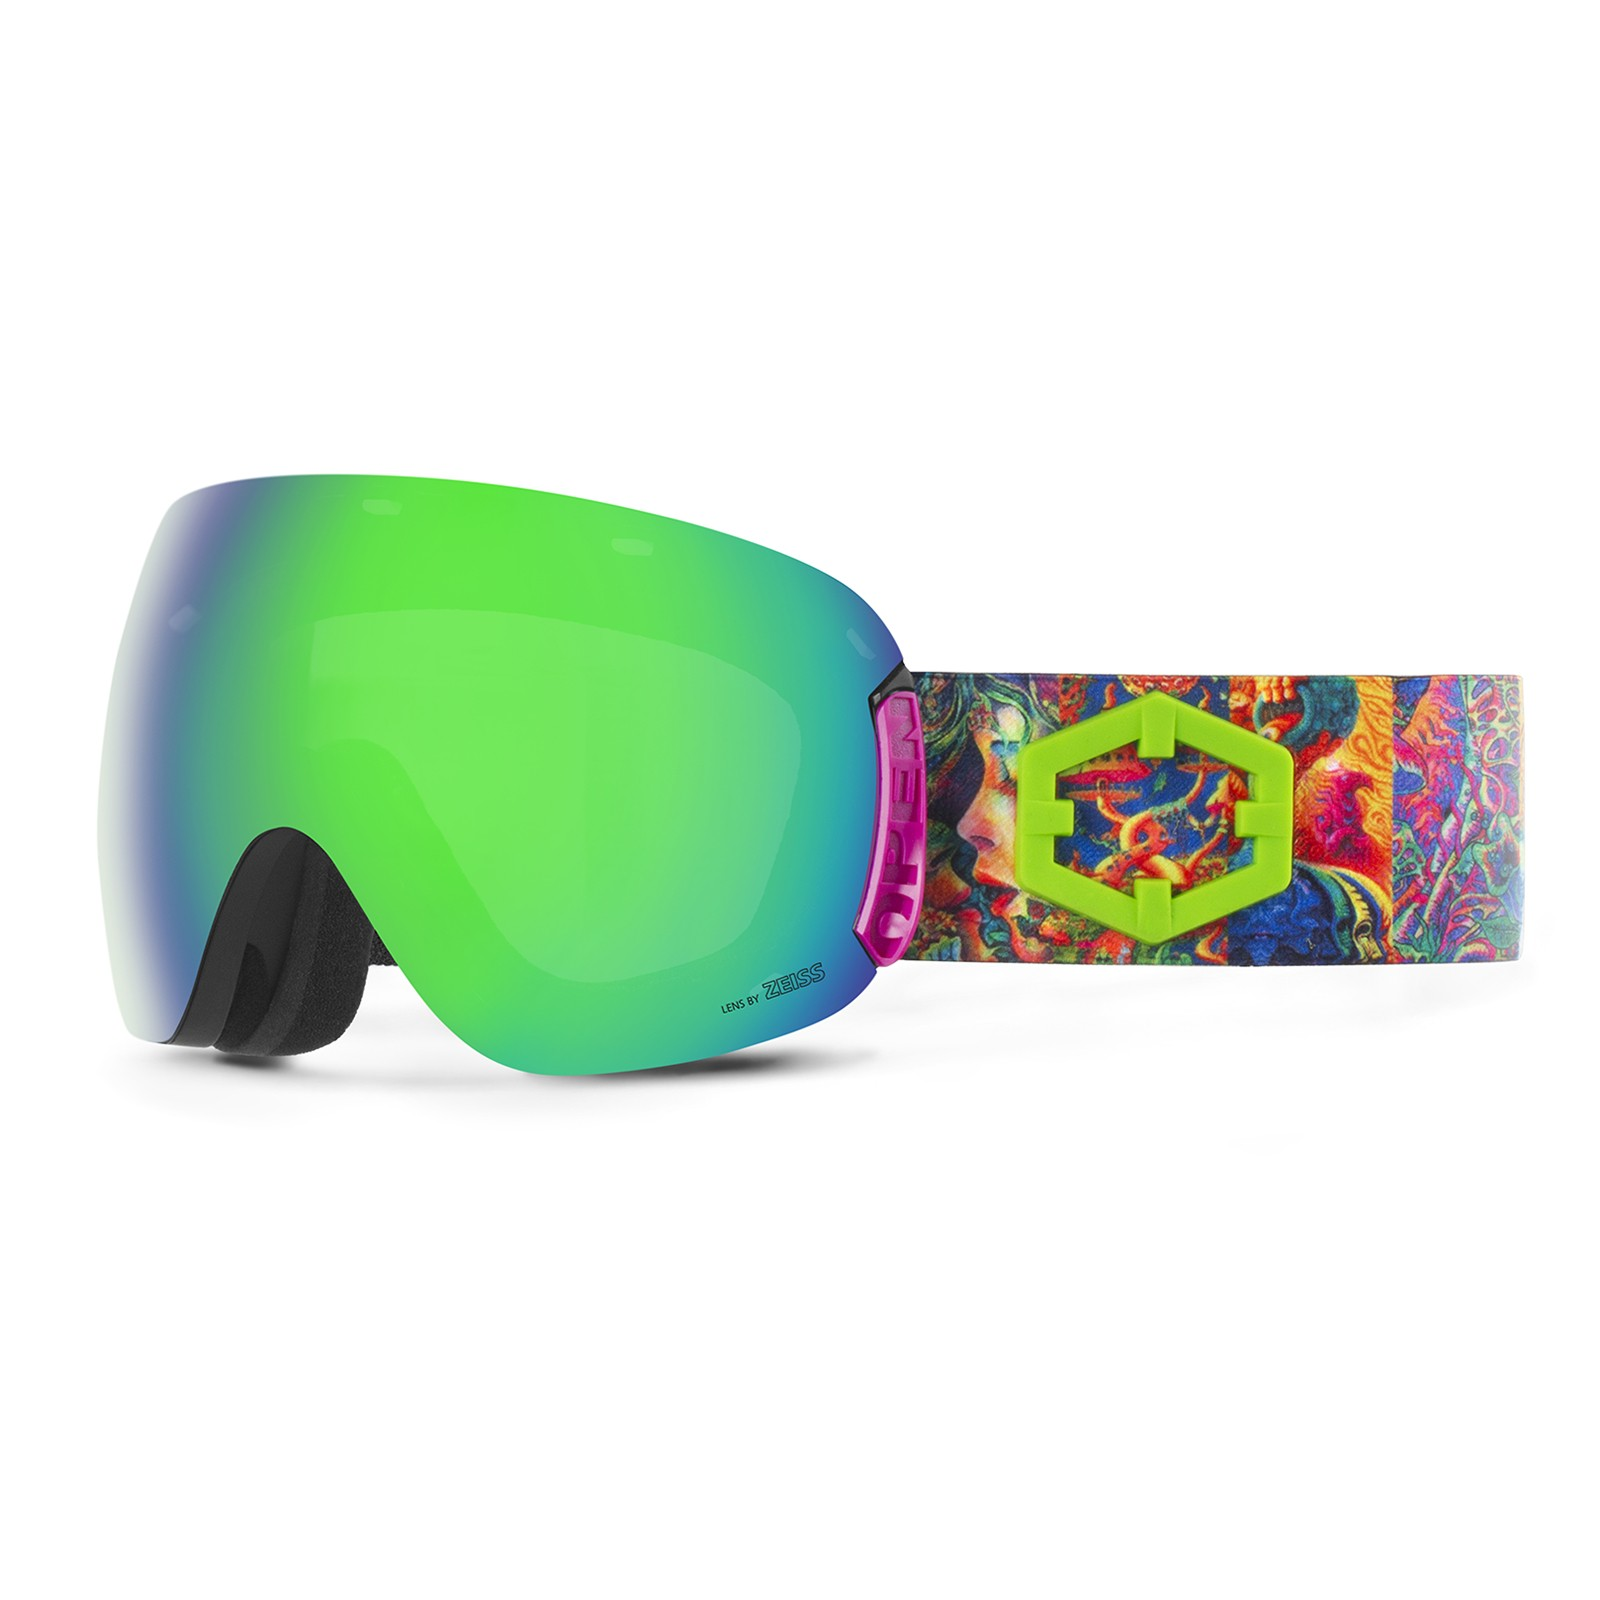 Open Lsd Green mci goggle